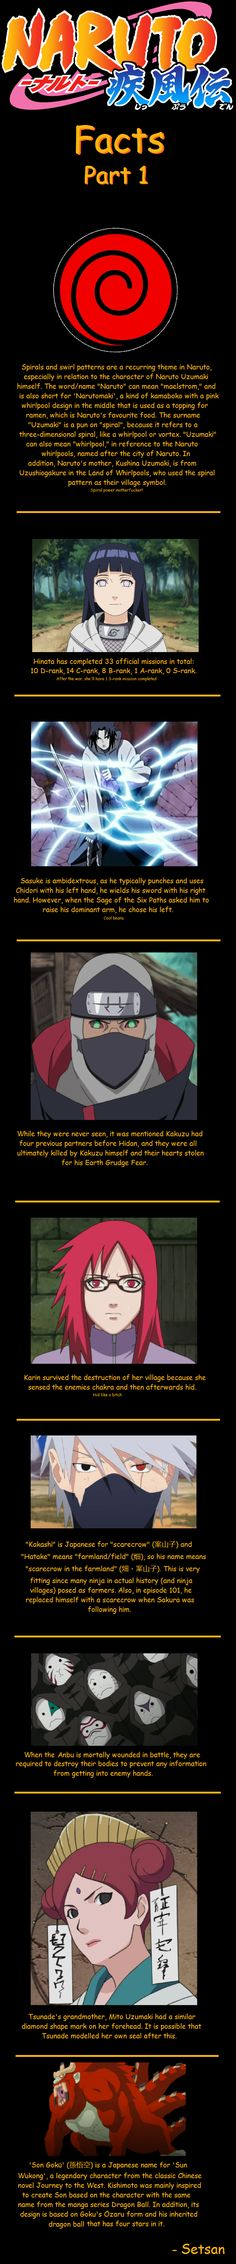 Naruto Facts Part 1 #funny